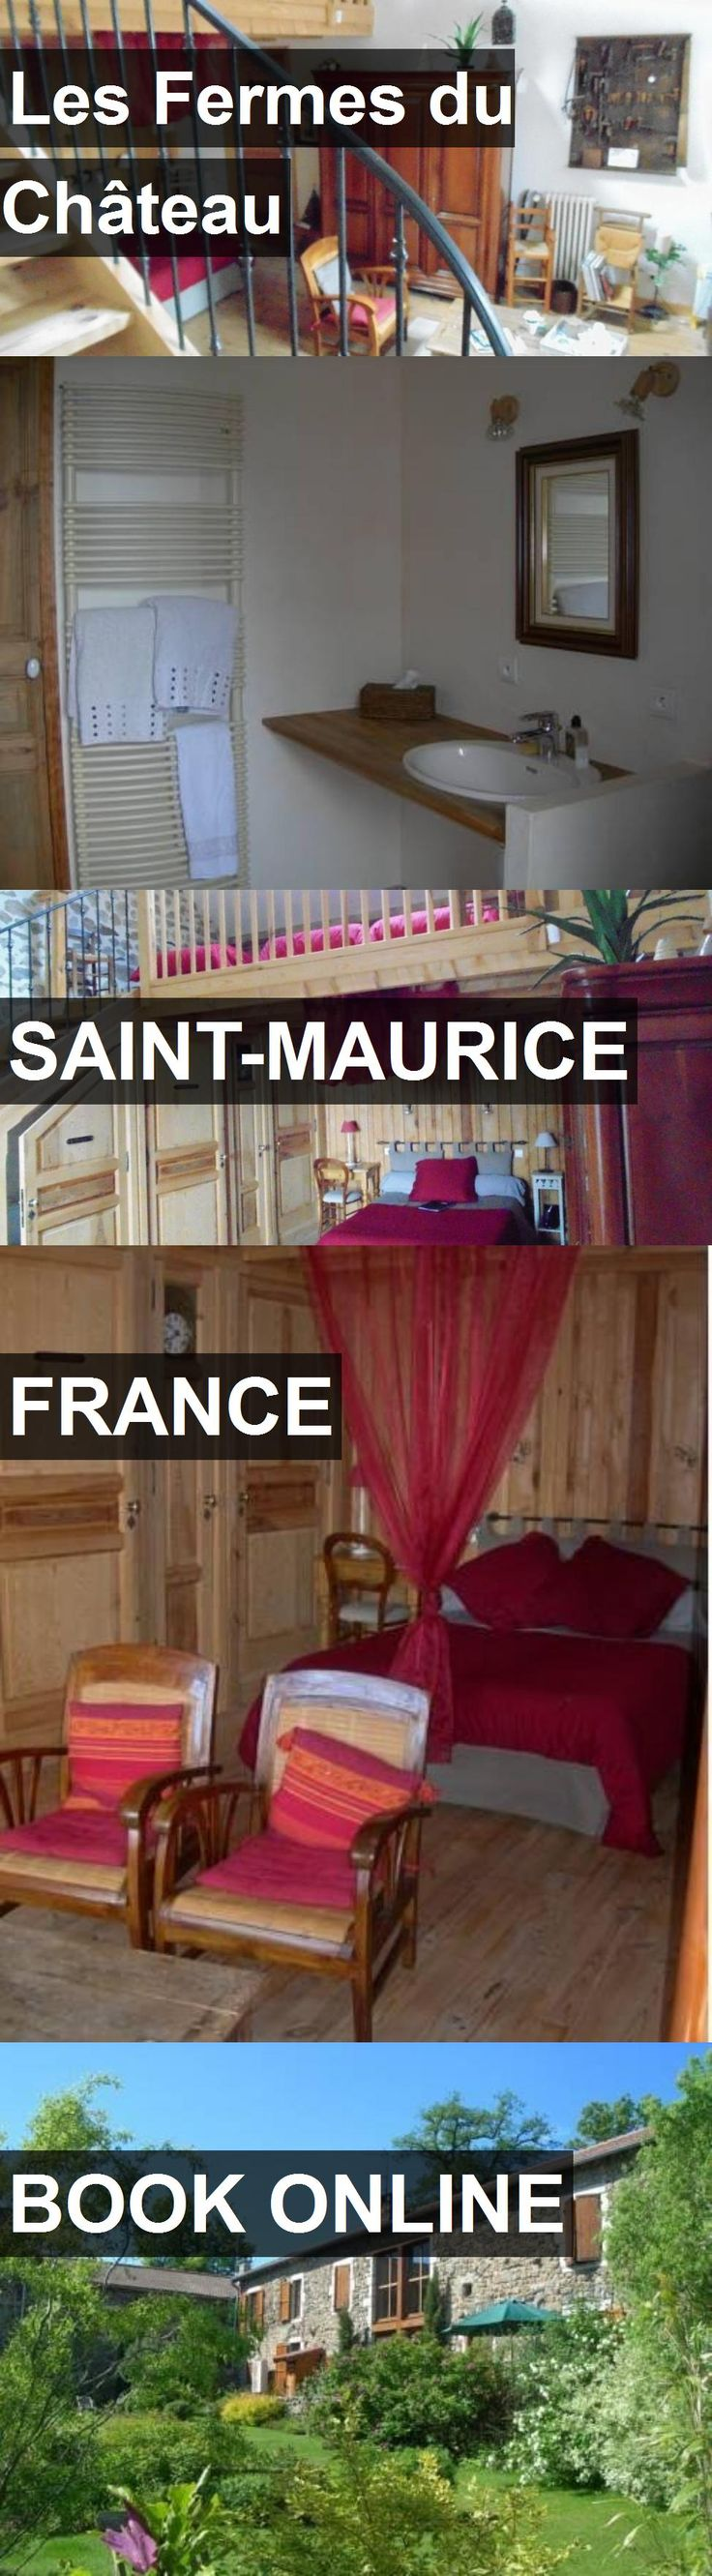 Hotel Les Fermes du Château in Saint-Maurice, France. For more information, photos, reviews and best prices please follow the link. #France #Saint-Maurice #LesFermesduChâteau #hotel #travel #vacation